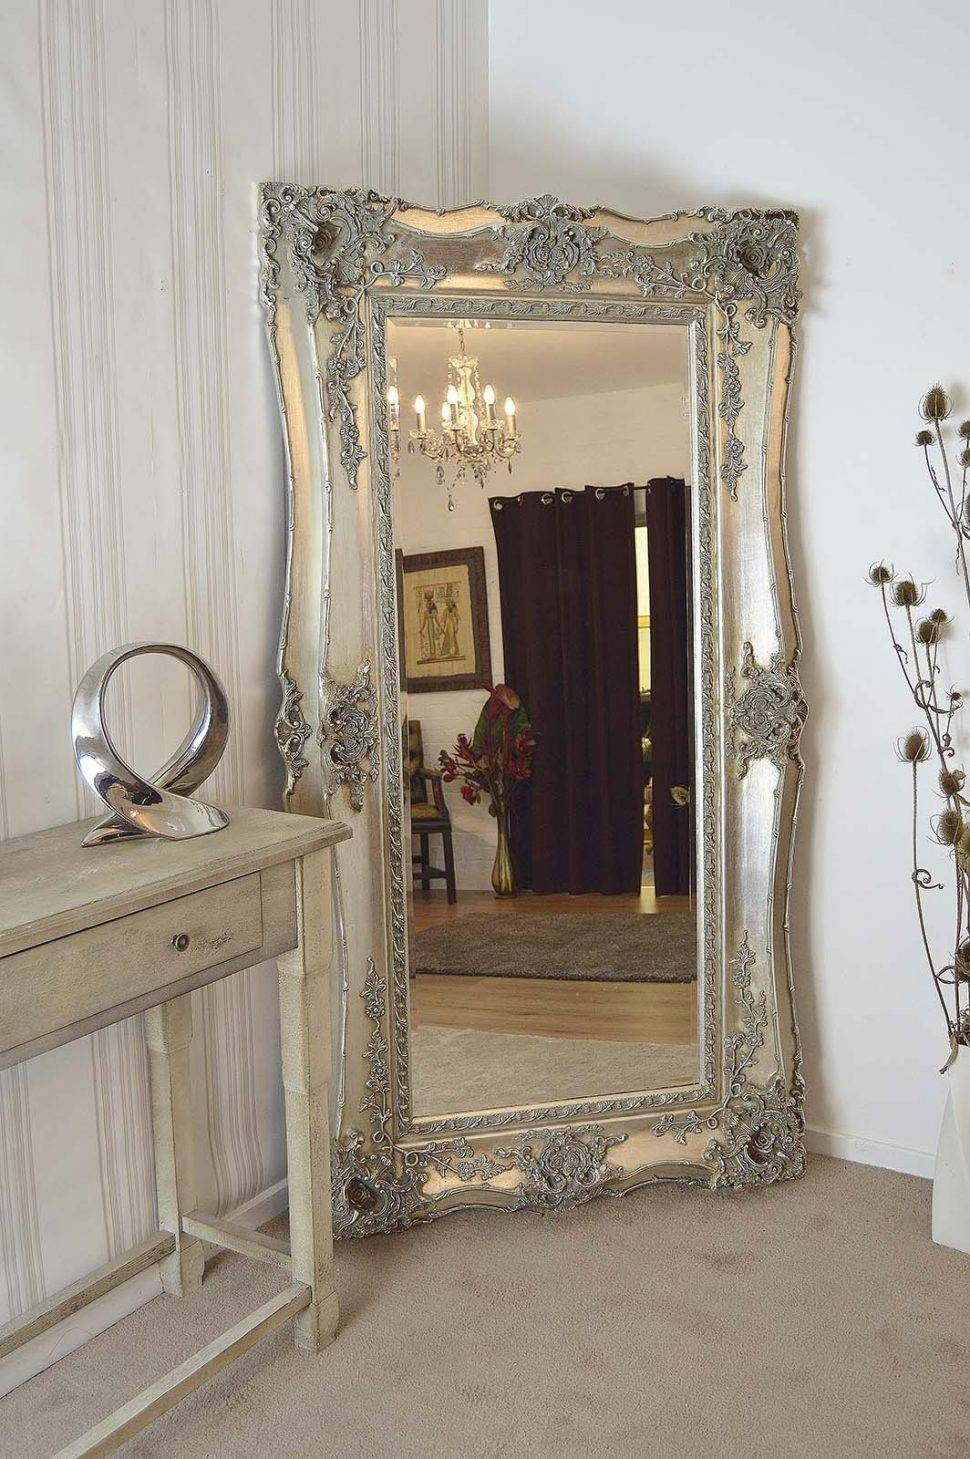 Bedroom Furniture : Large Gold Mirror Free Standing Mirror Wooden Throughout Long Free Standing Mirrors (View 3 of 25)